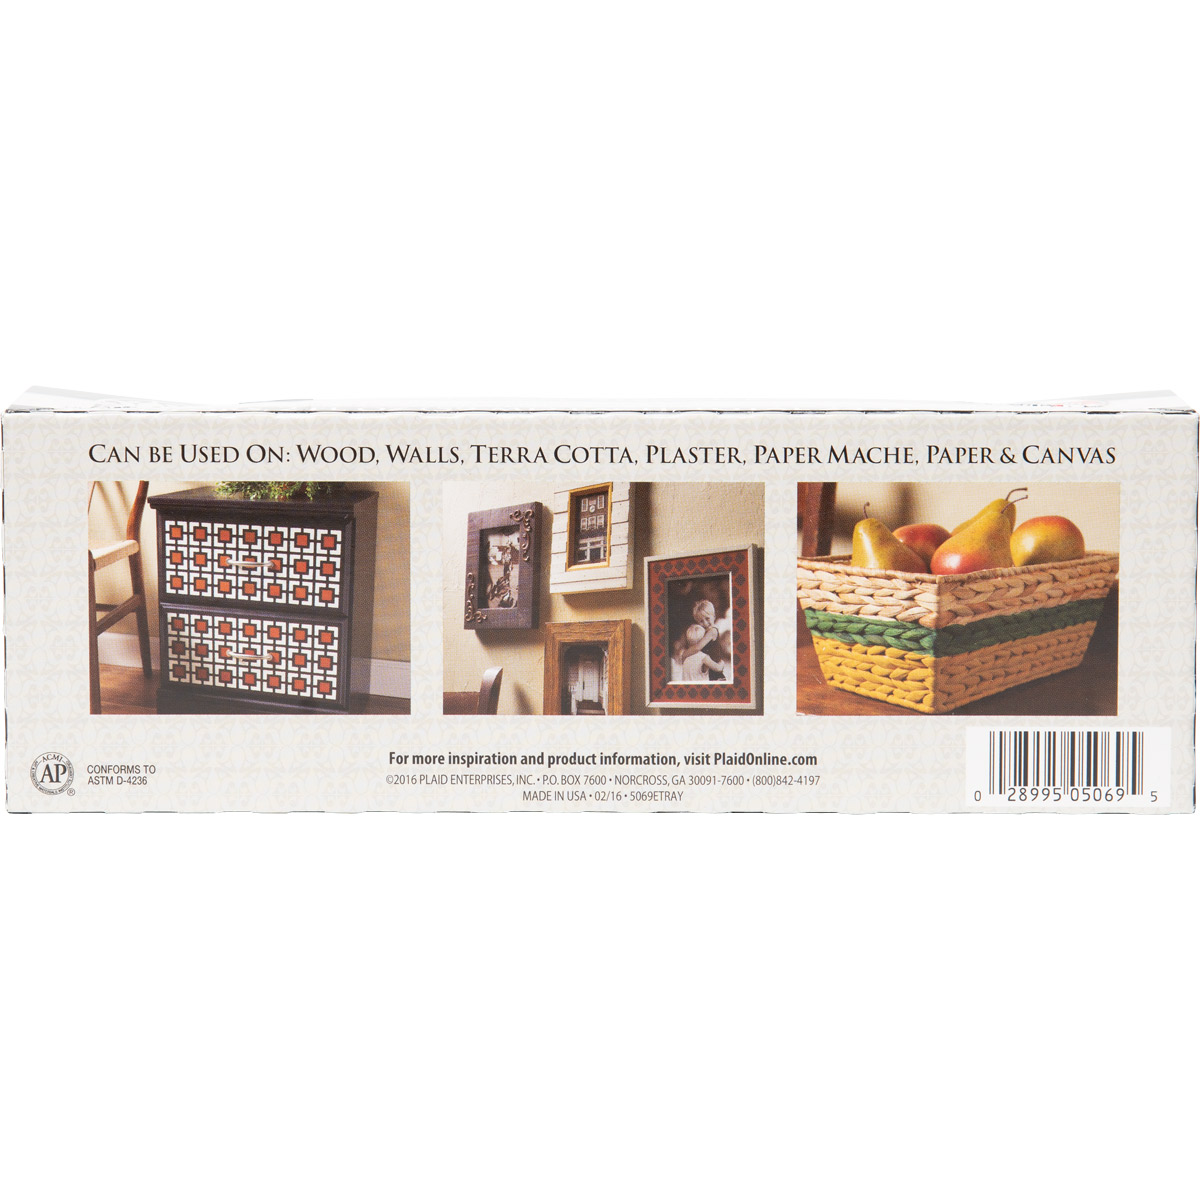 FolkArt ® Acrylic Colors Value Paint Set - Town Square, 12 Colors - 5069E